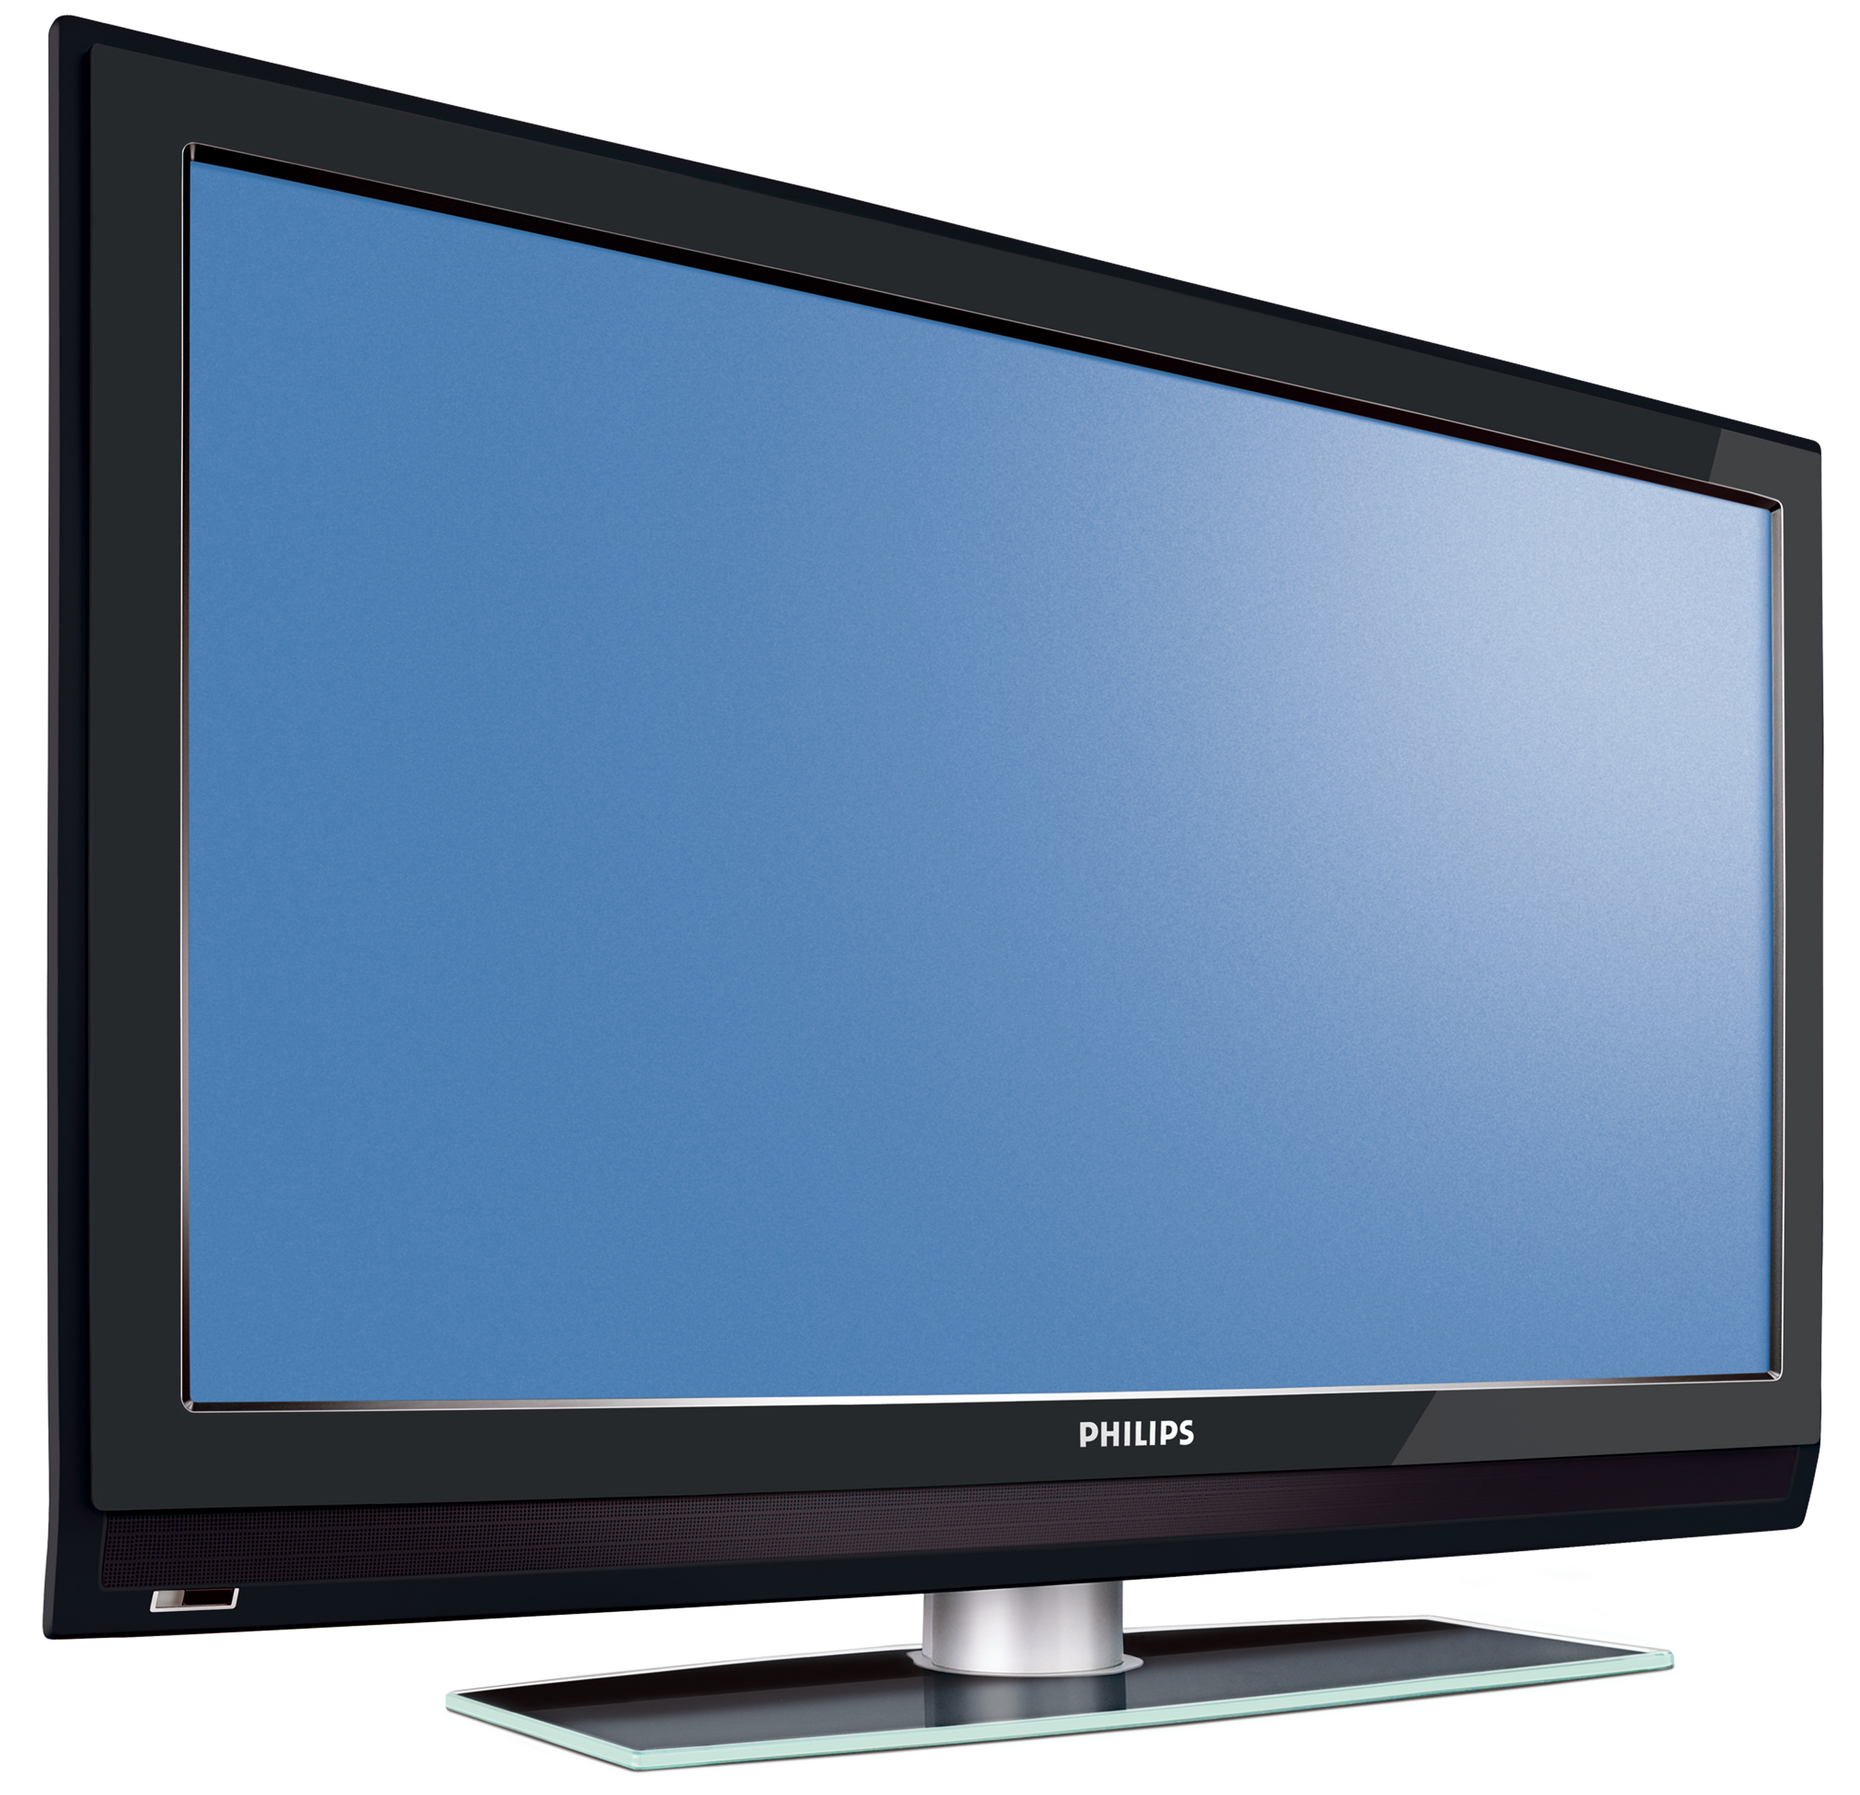 Philips' big plasma TV has a relatively small price tag.